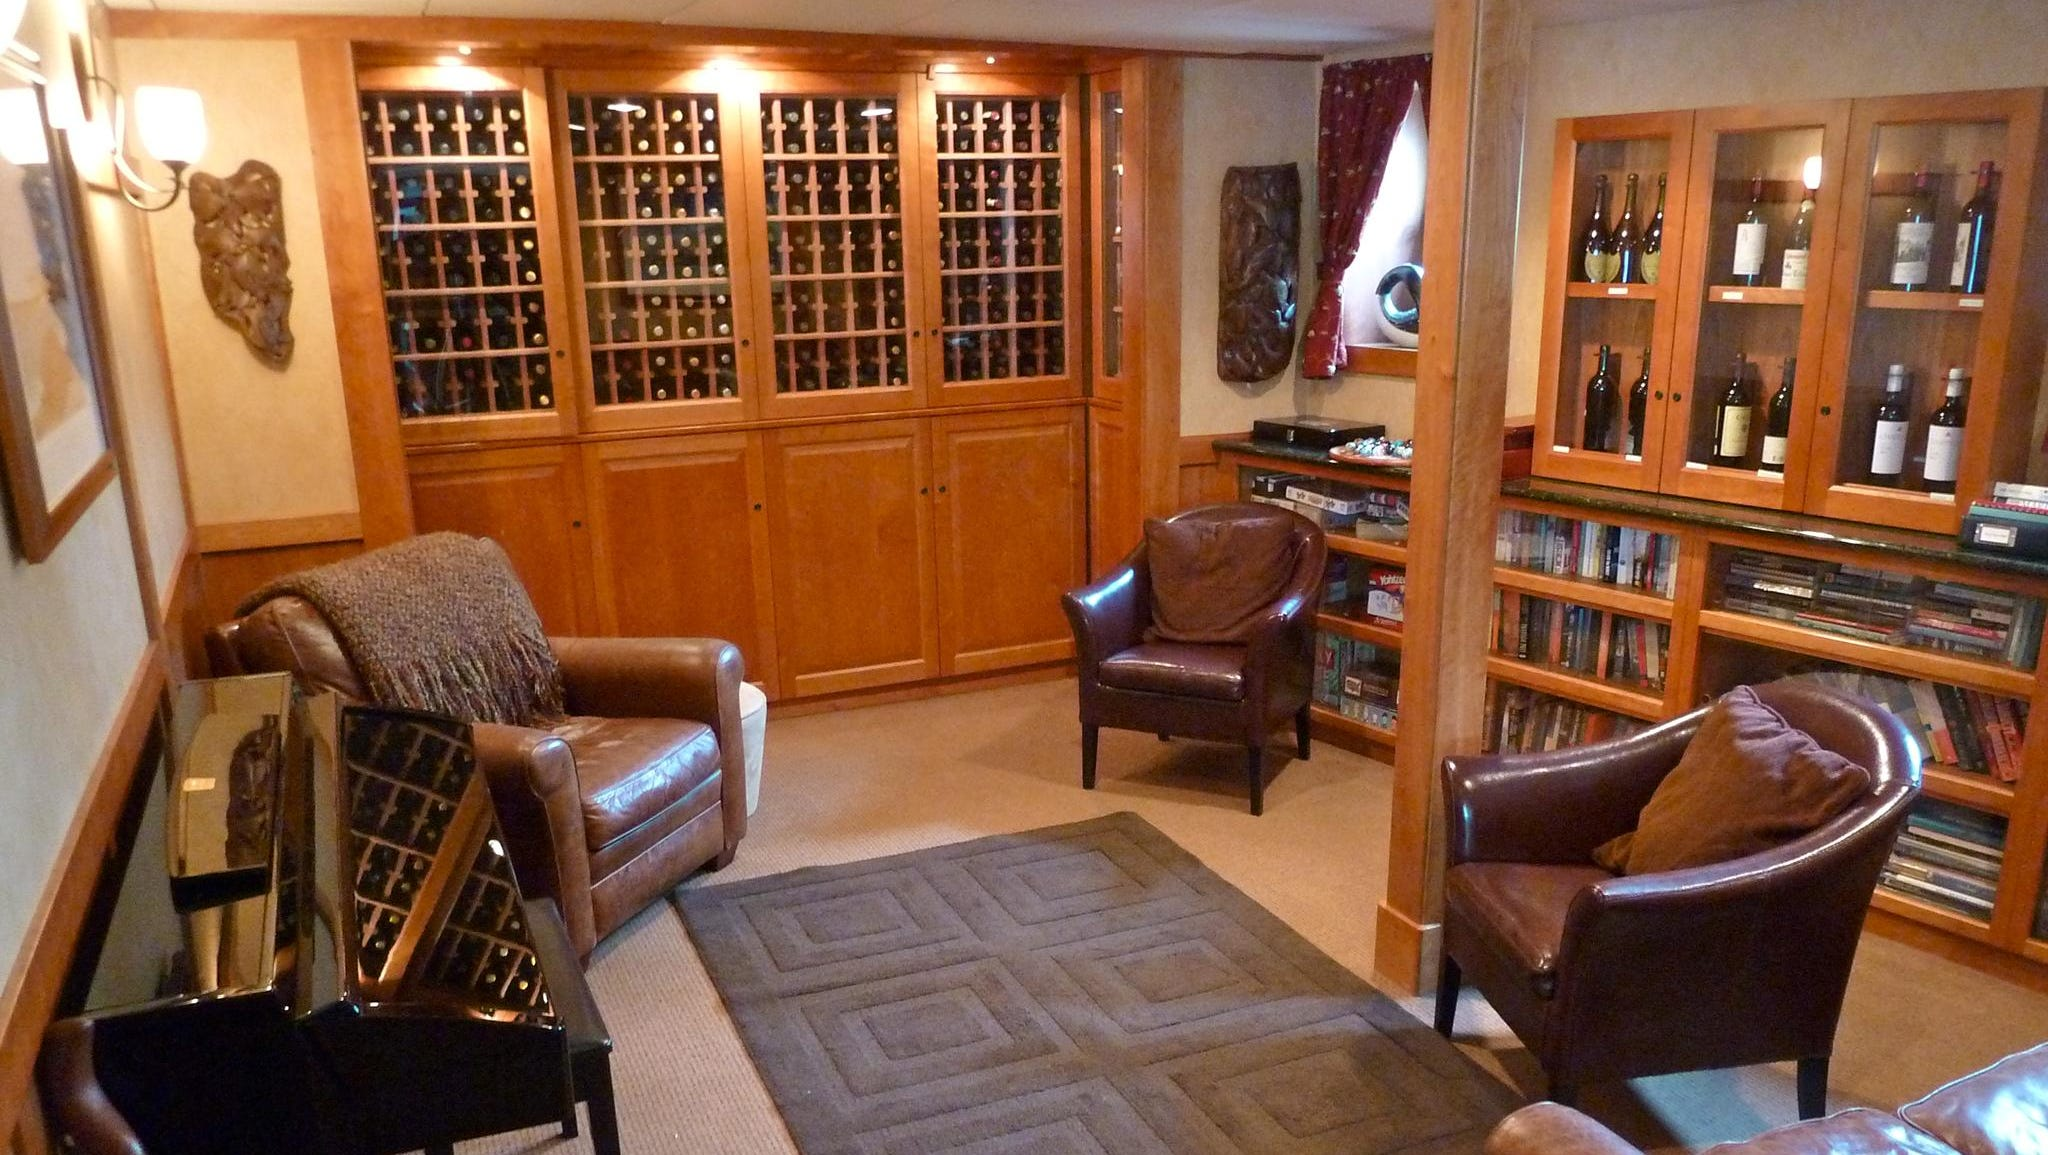 A cluster of public spaces on Main Deck begins with the Wine Library, which has a selection of reference books and DVDs with information on the places the ship visits.